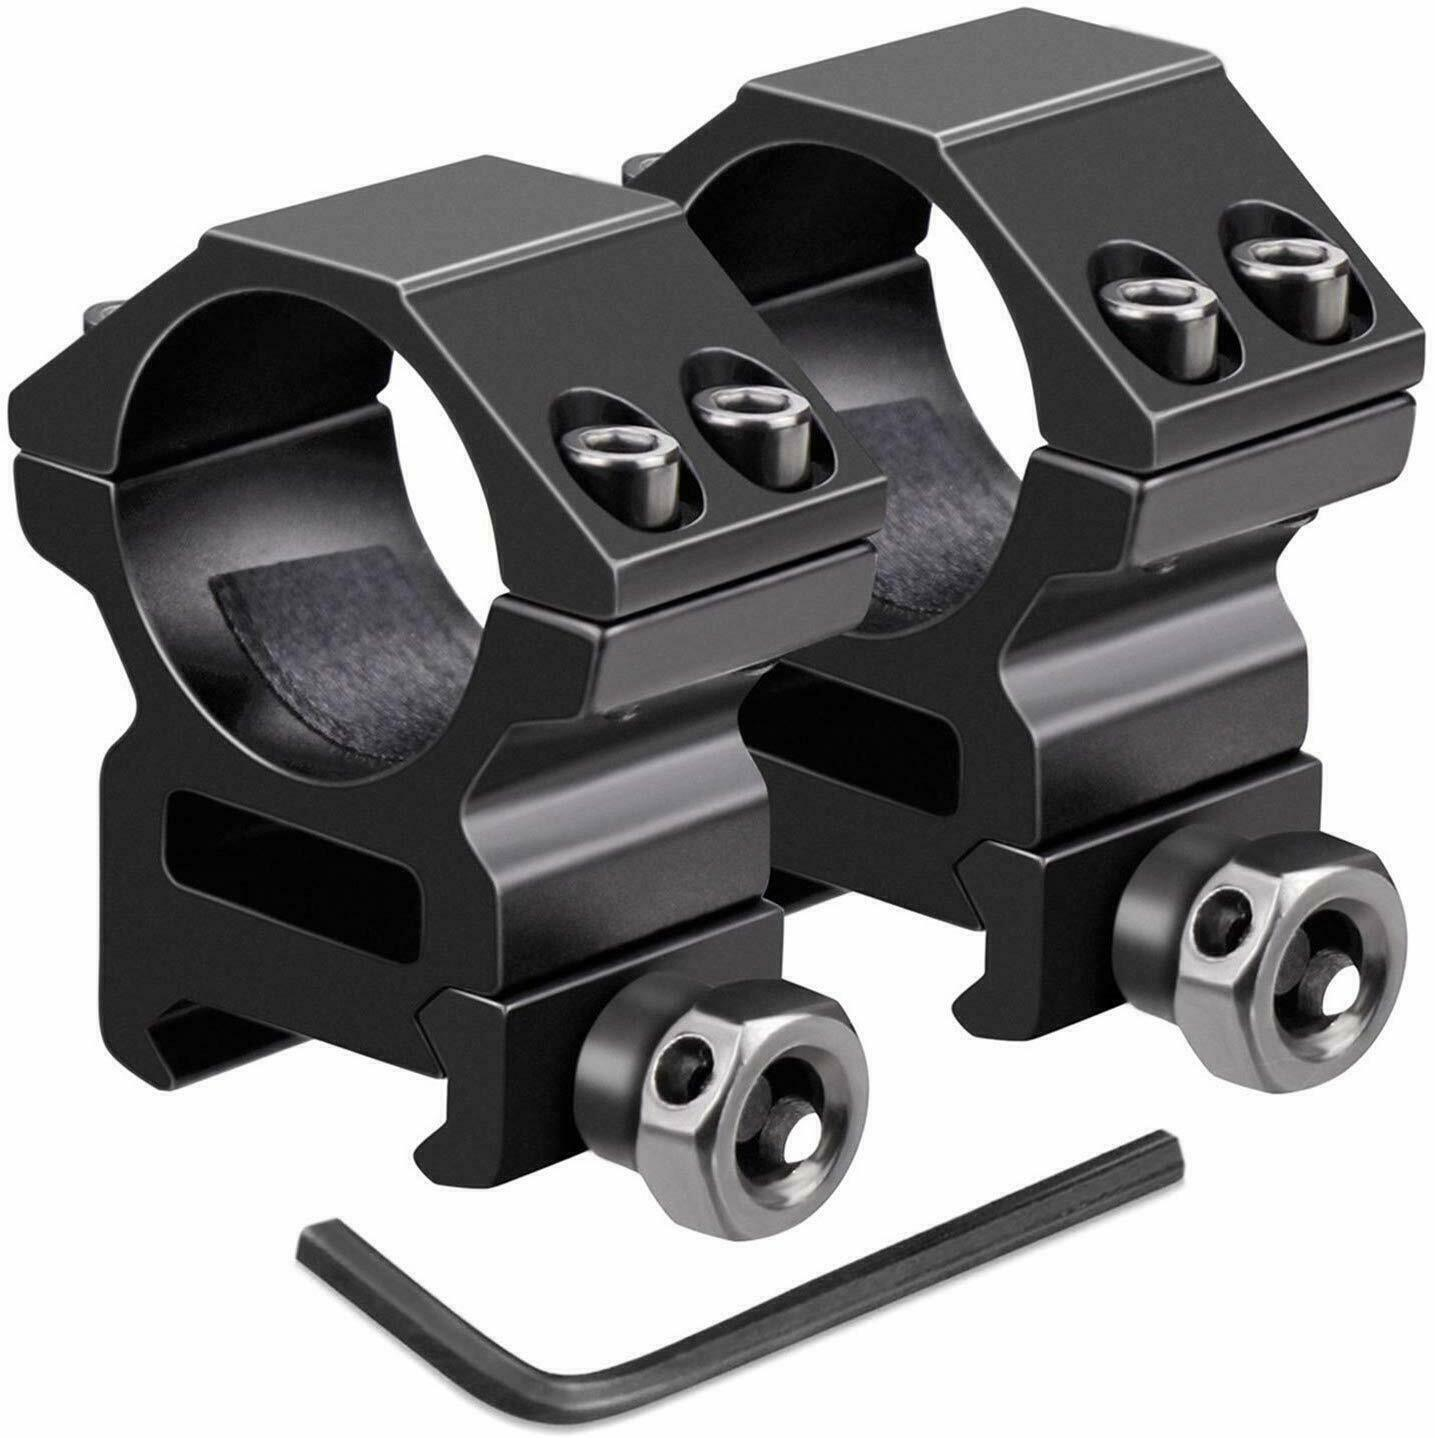 Weaver Style 30mm Rings With 1 Inch Insert Heavy Duty For Rifle Scope